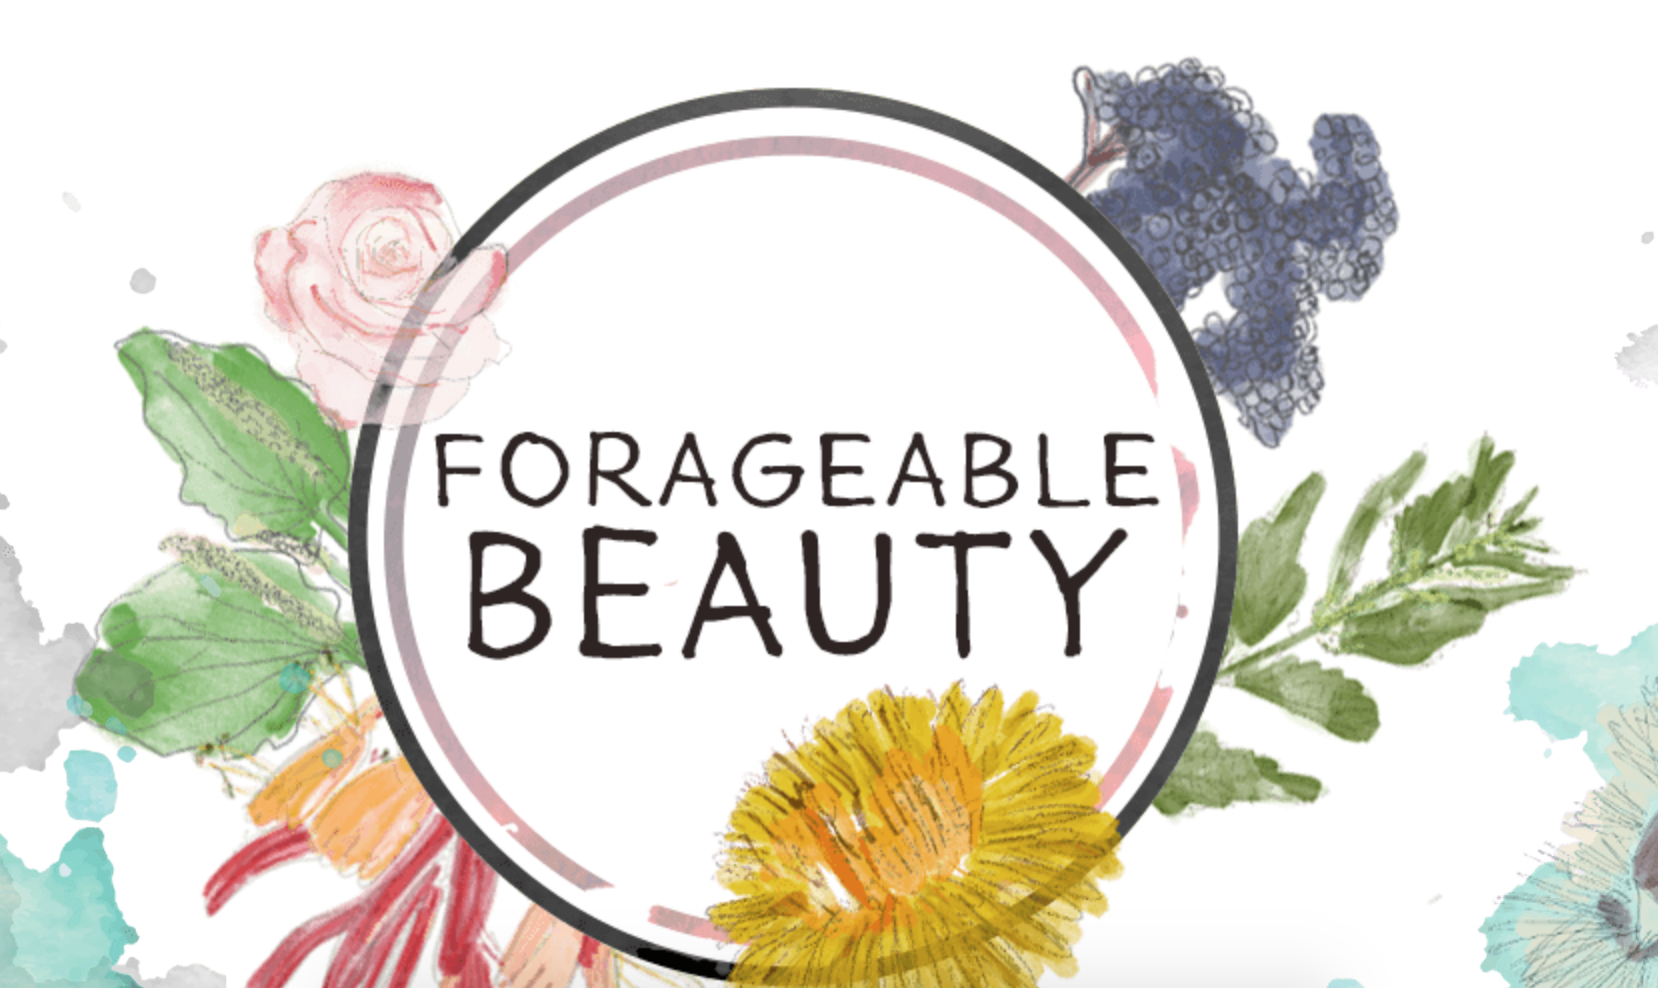 FRAGRANCEDIRECT - FORGEABLE BEAUTY ARTICLE